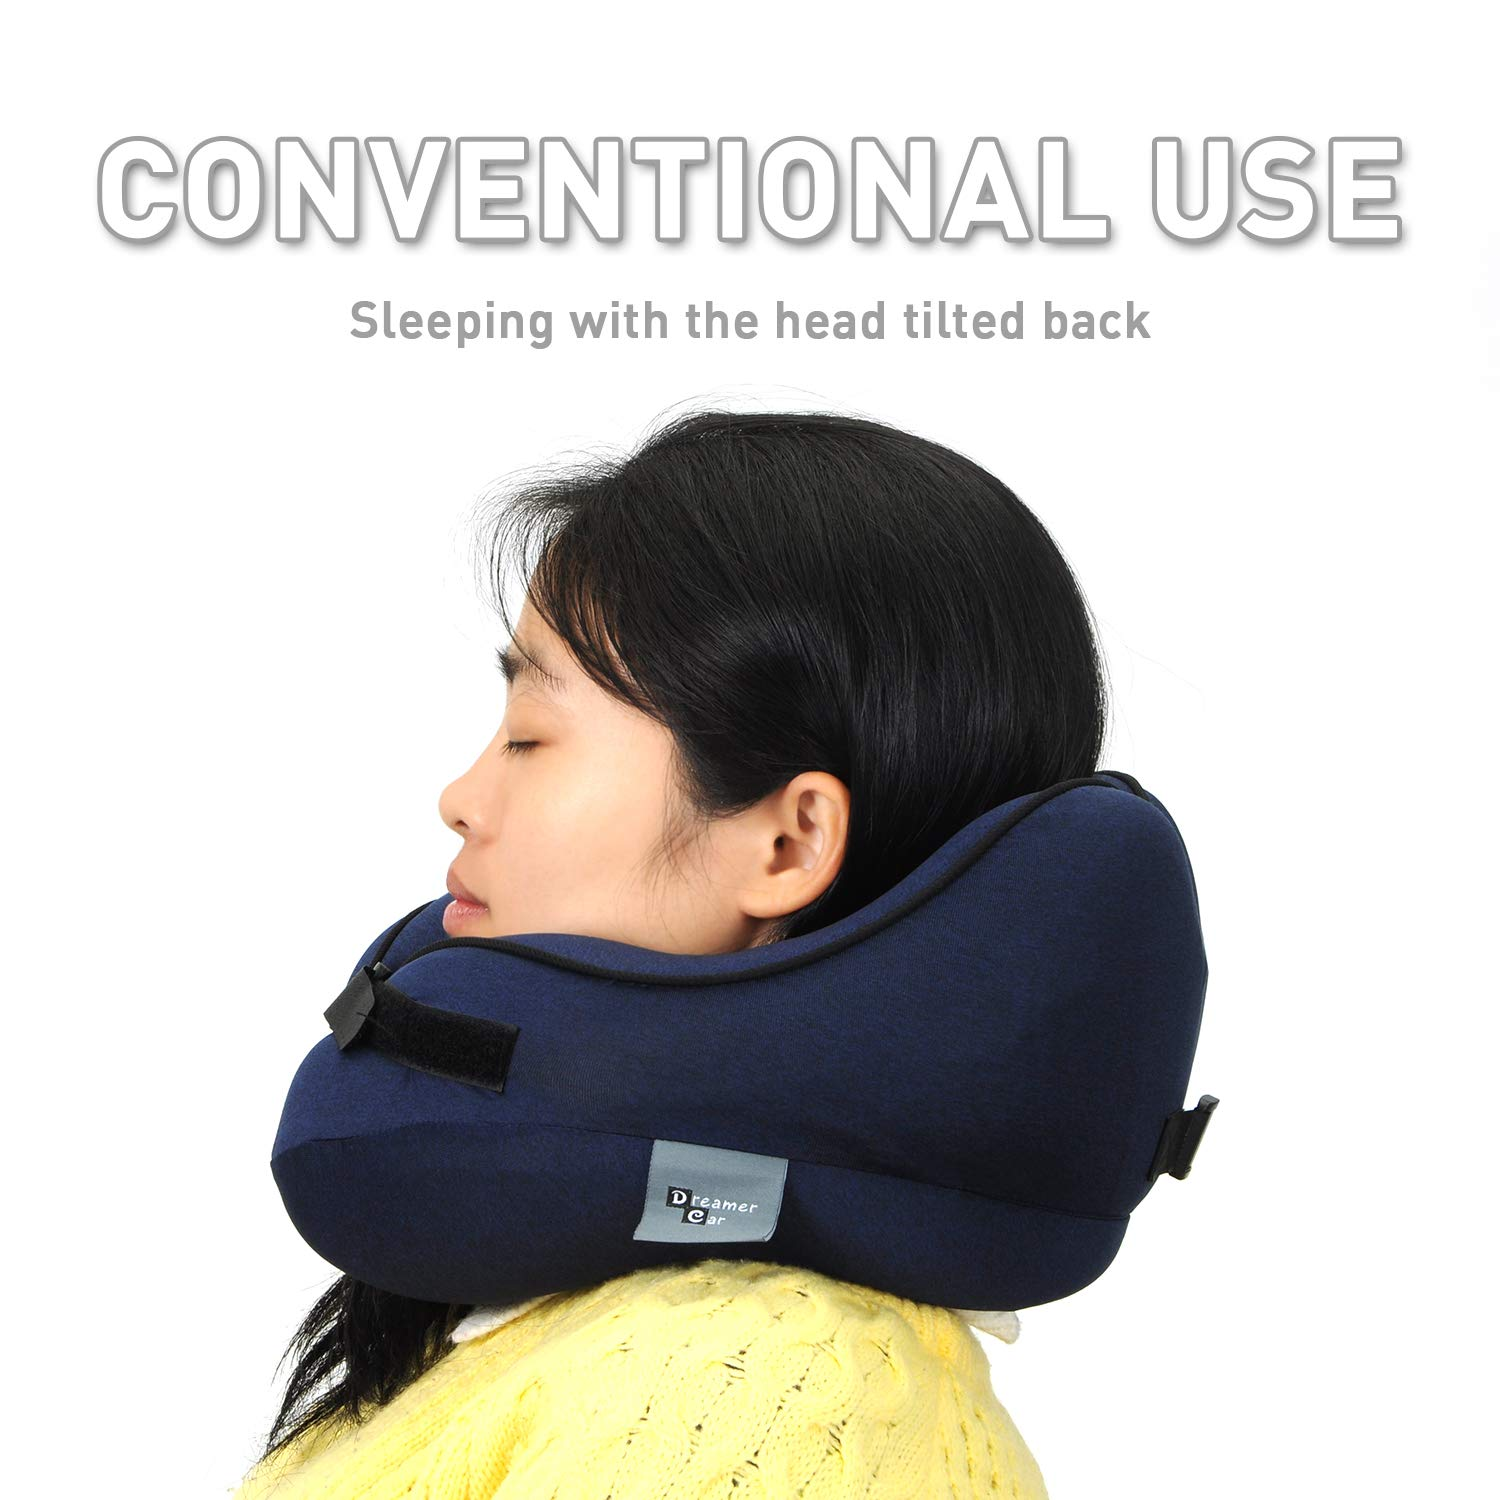 Dreamer Car Neck Supporting Travel Pillow- Soothe Neck Fatigue-Support The Head, Neck and Chin in Any Sitting Positions- Dark Blue